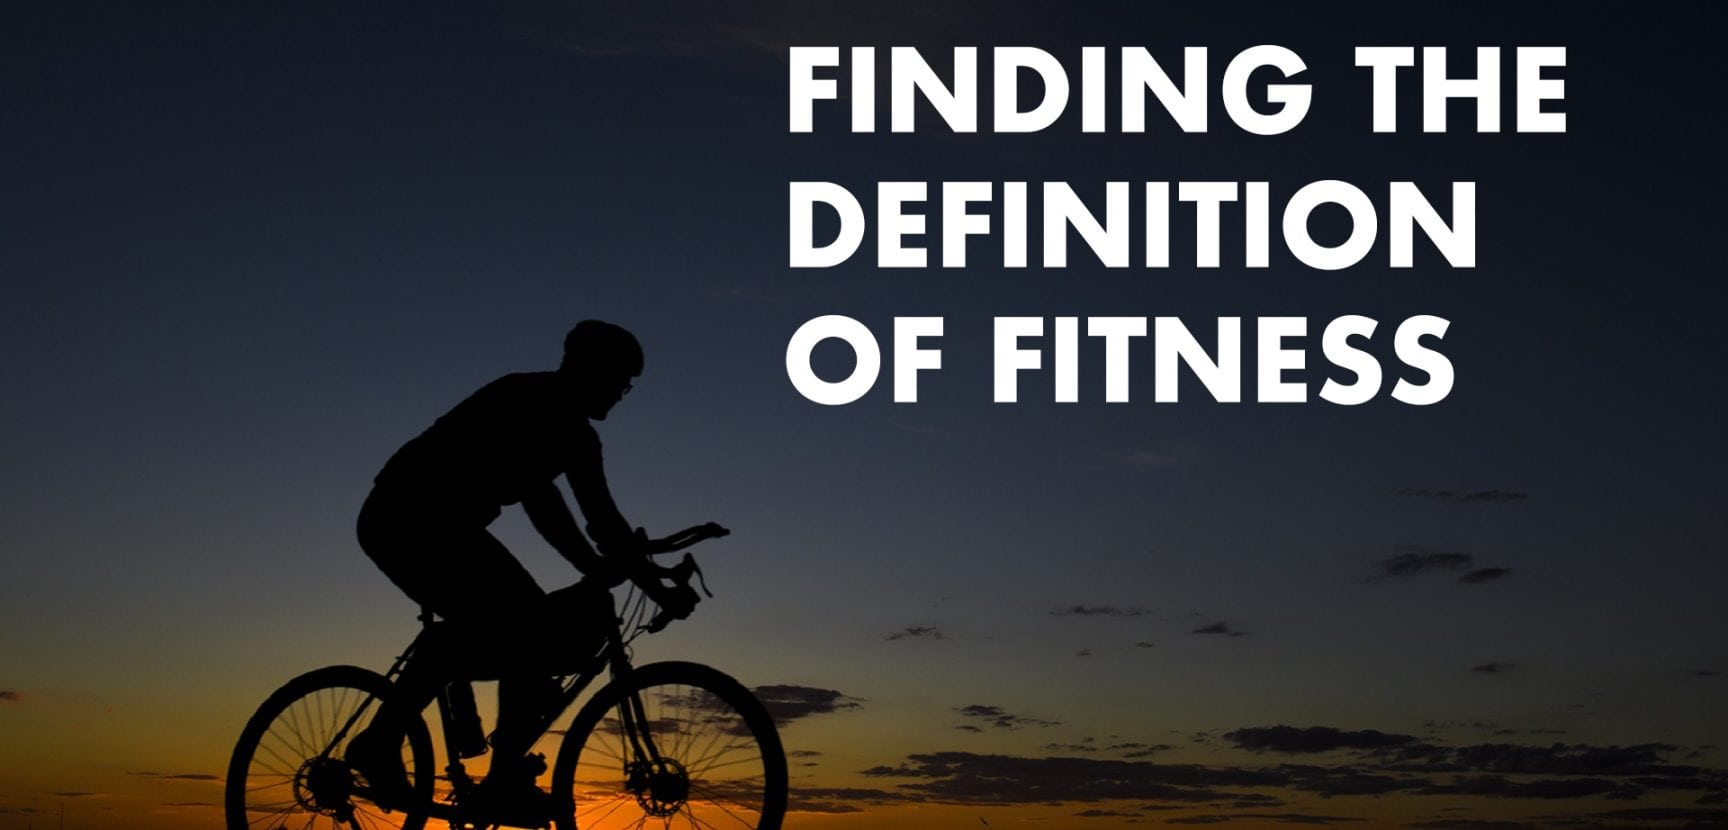 Finding the Definition of Fitness